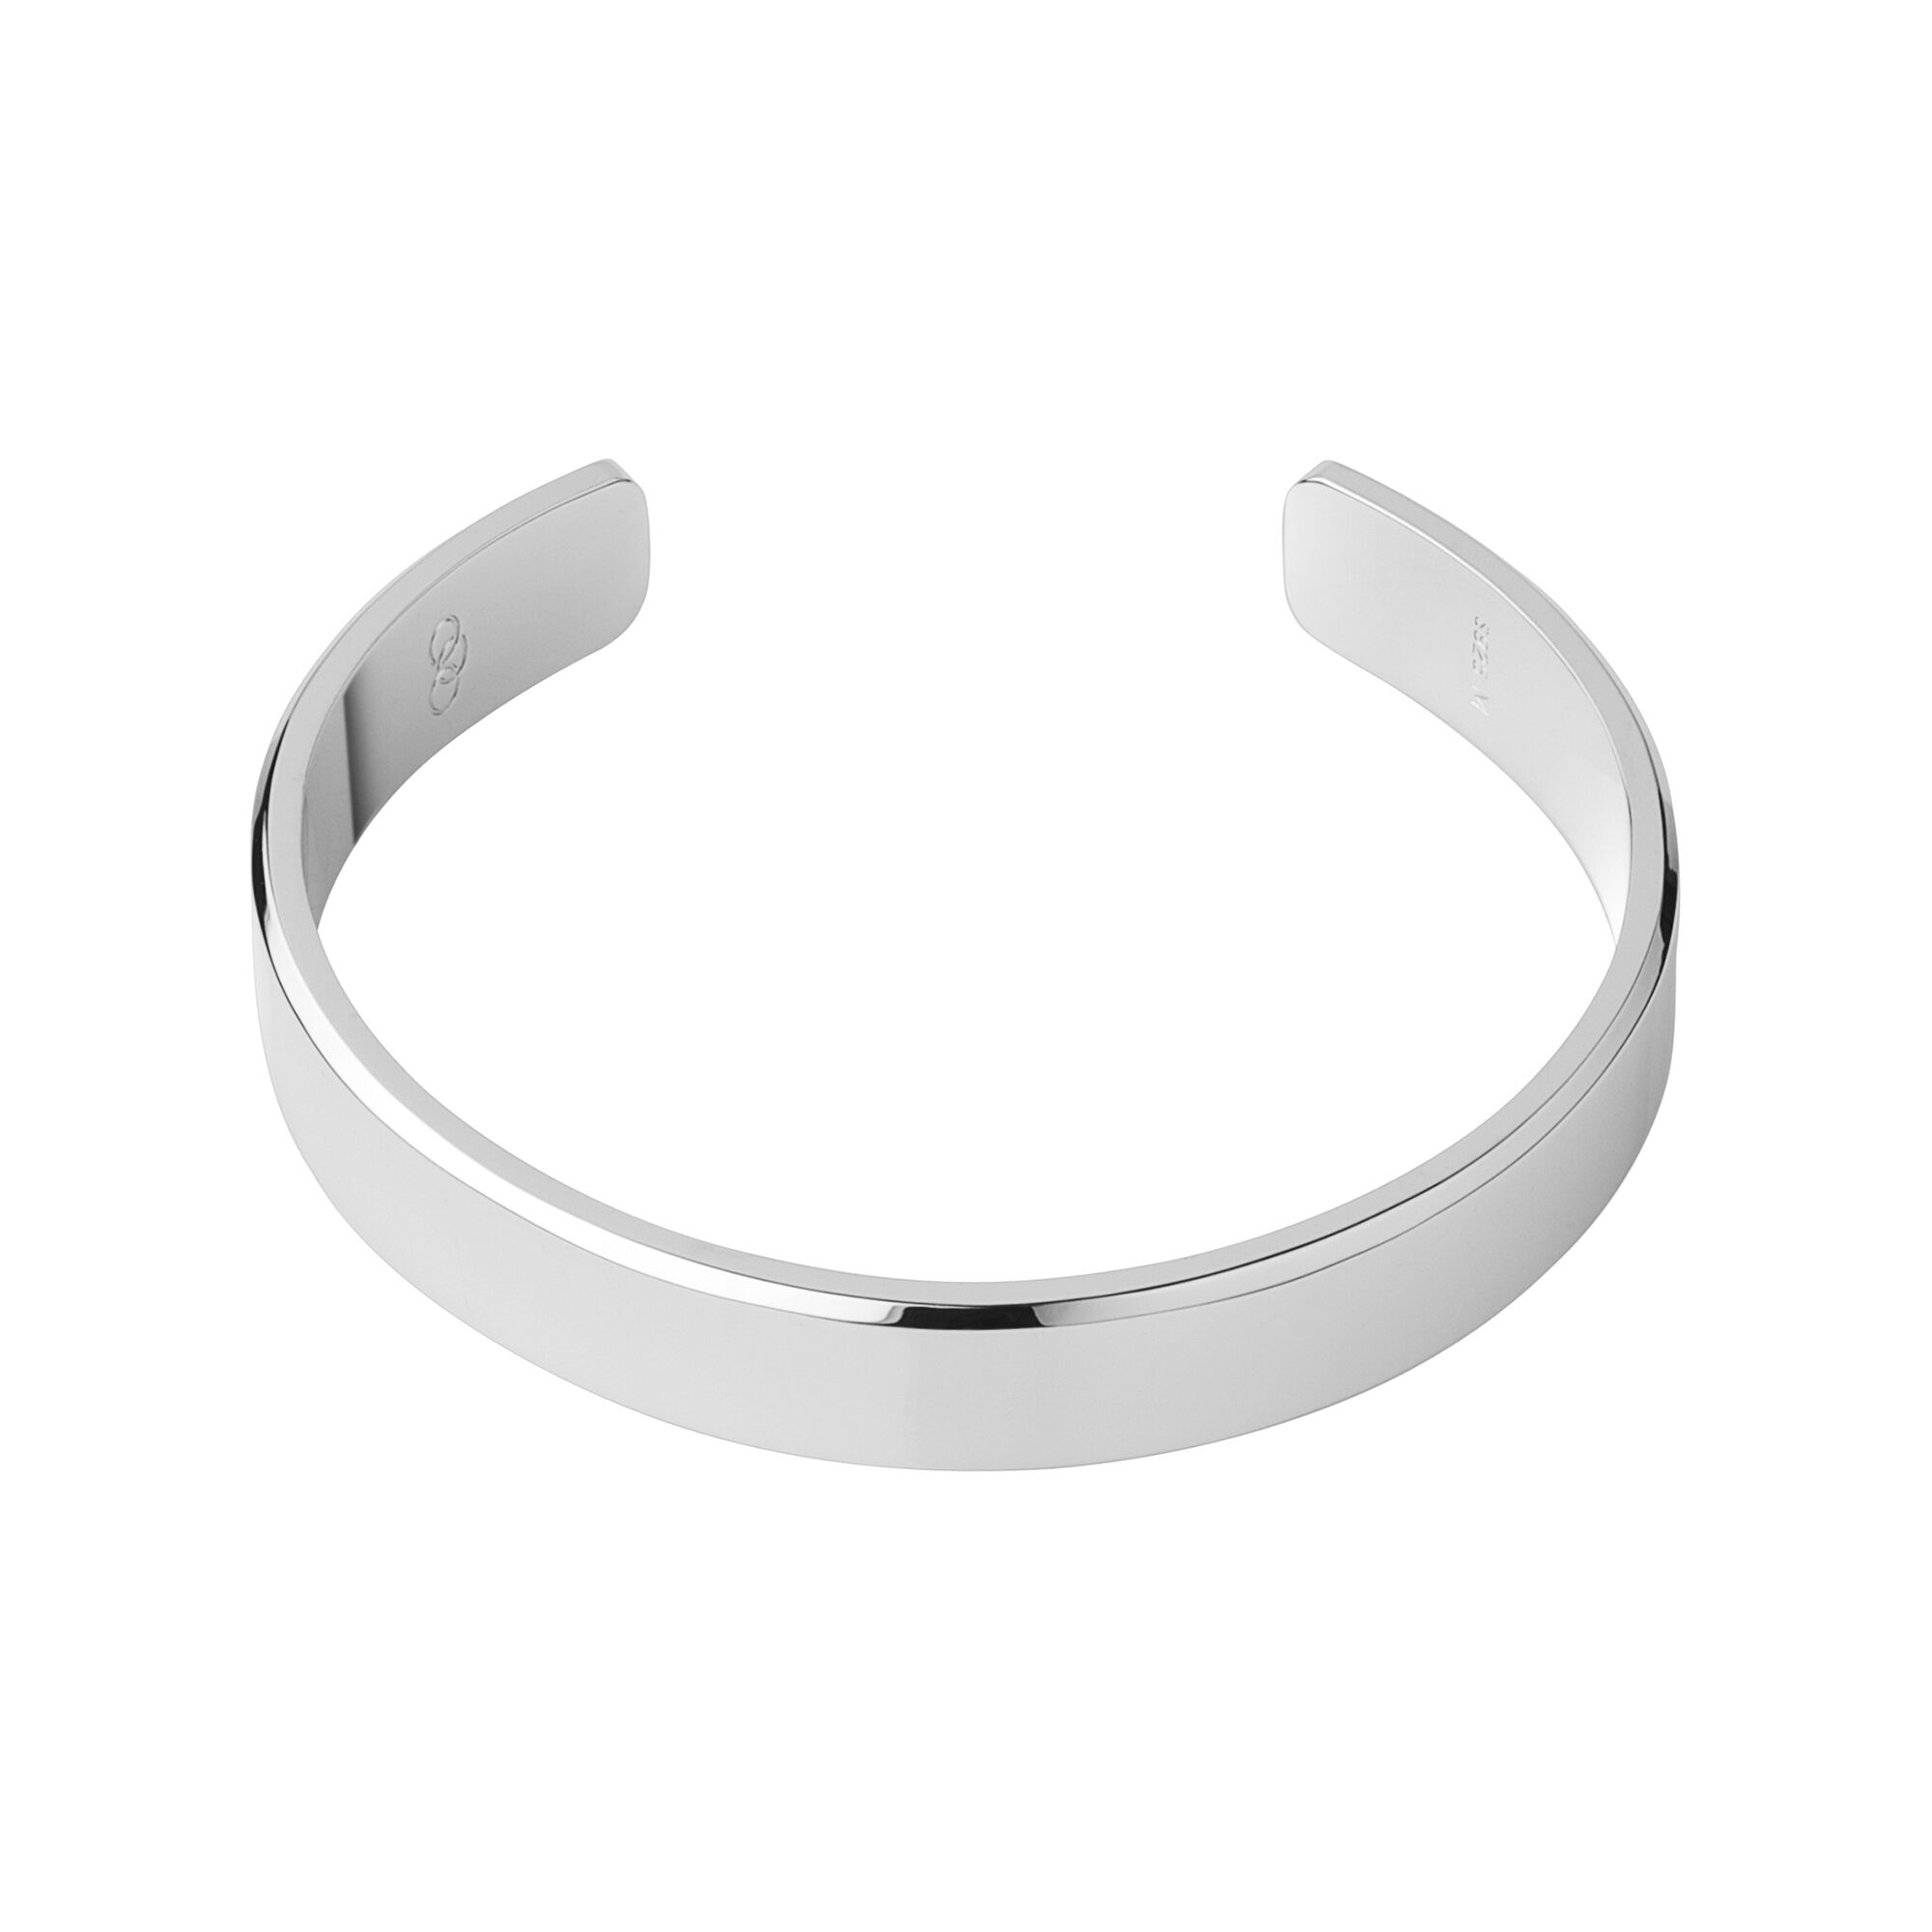 bangles silver bracelets mm weight width sterling p grams polished bands length hammered plain bangle